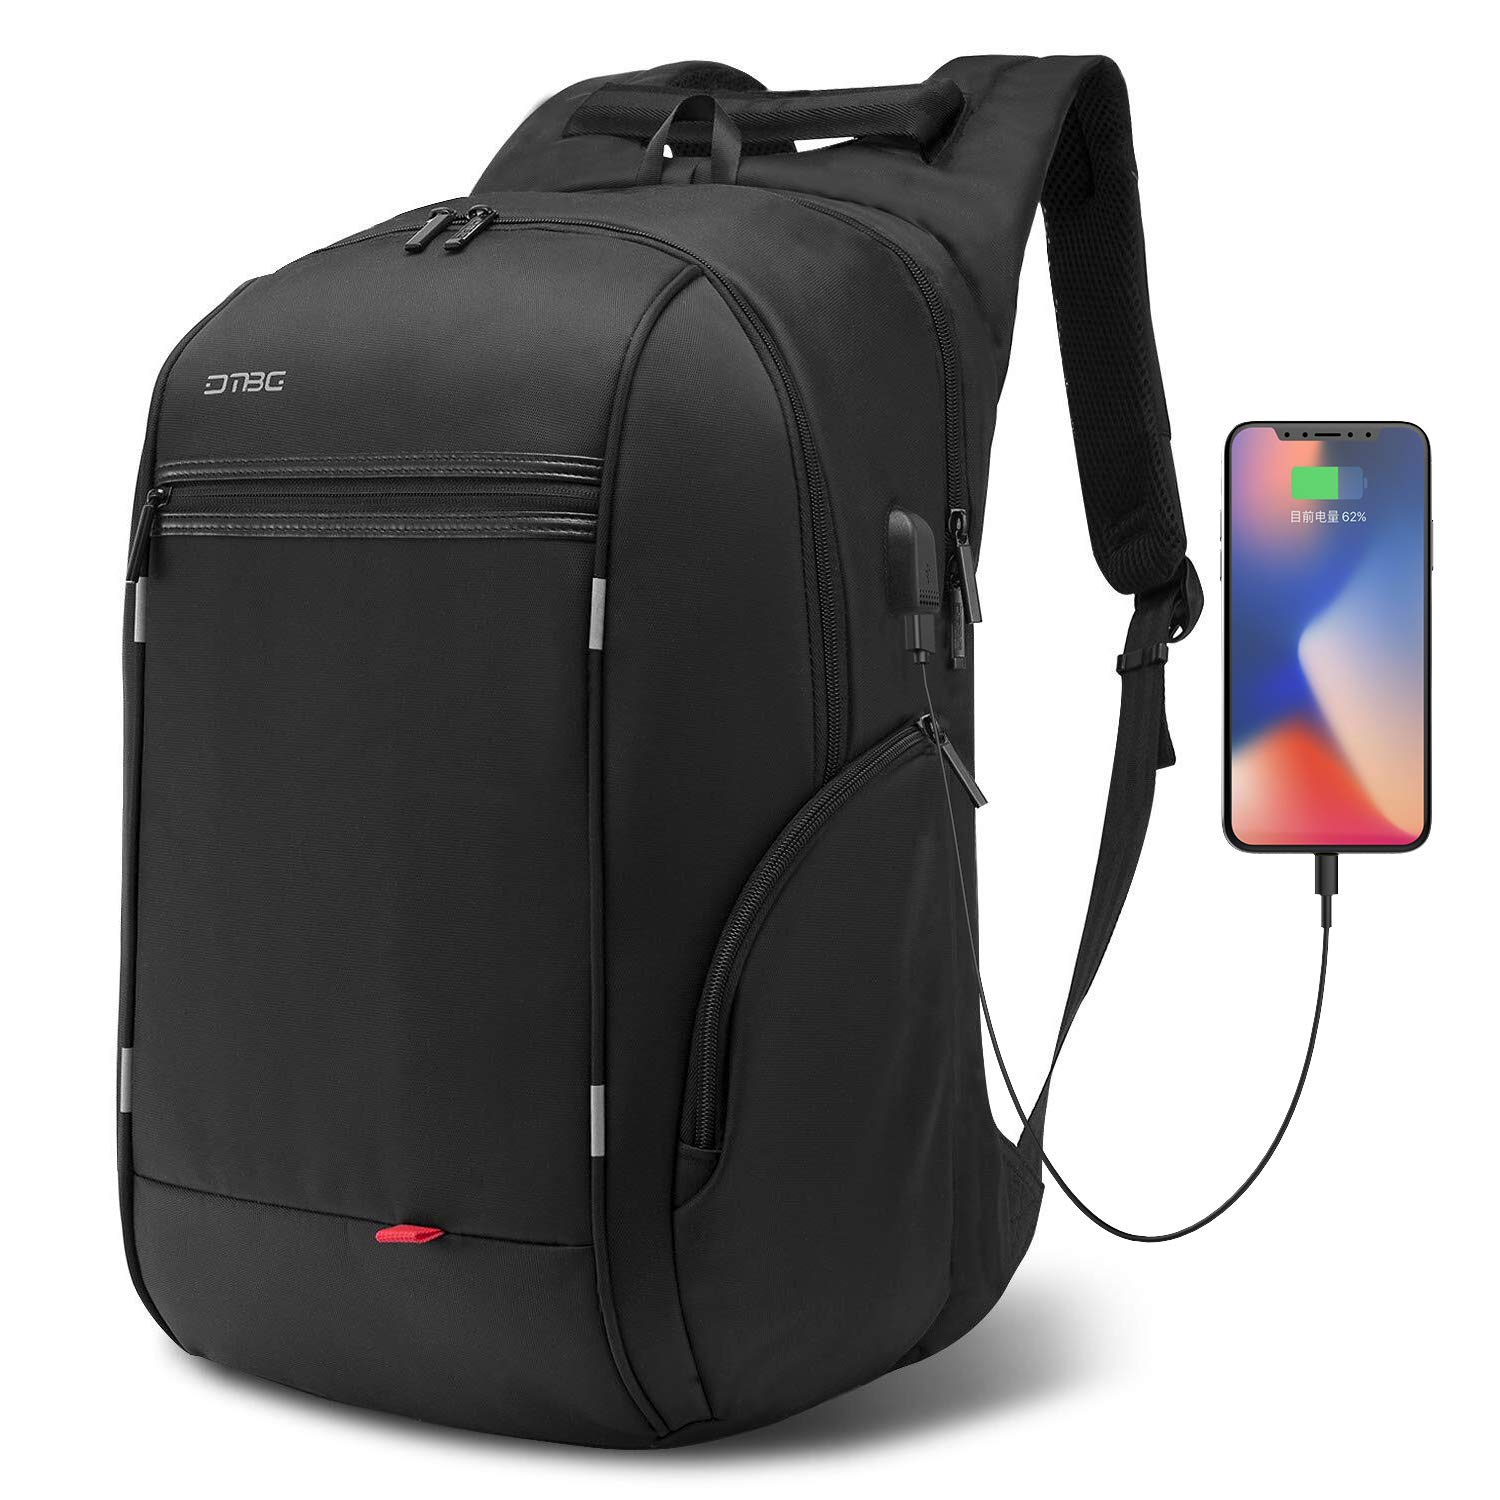 Travel Laptop Backpack with USB Charging Port for Men Women Outdoor